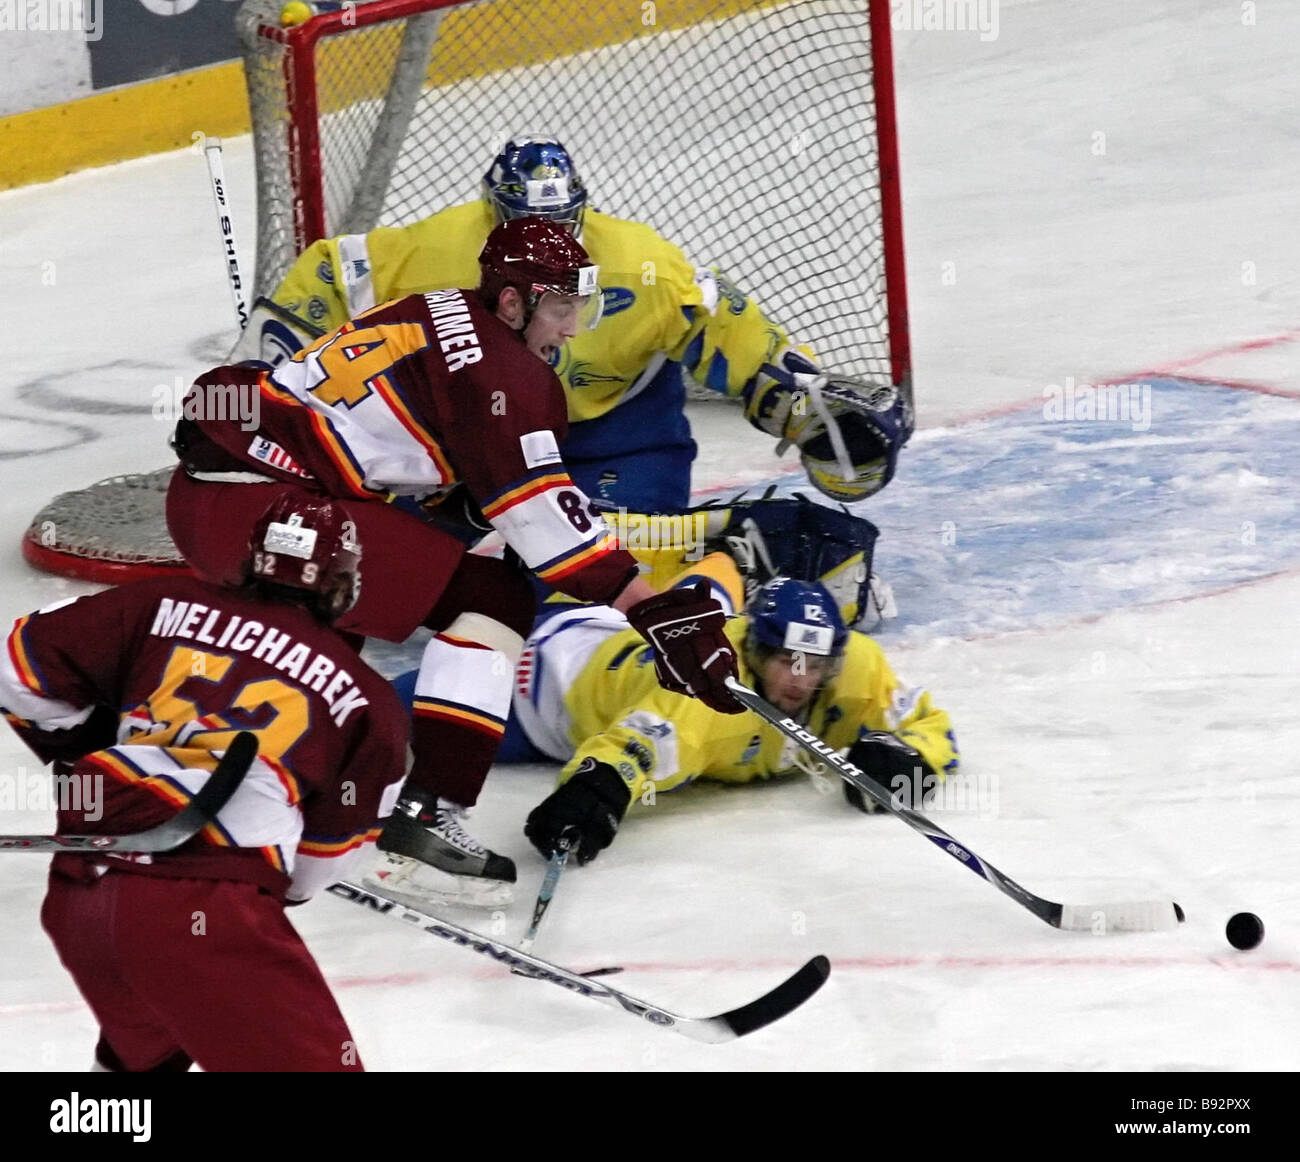 Sparta player Jakob Langhammer number 84 charges the Davos goal in the Davos Switzerland versus Sparta Czech Republic - Stock Image